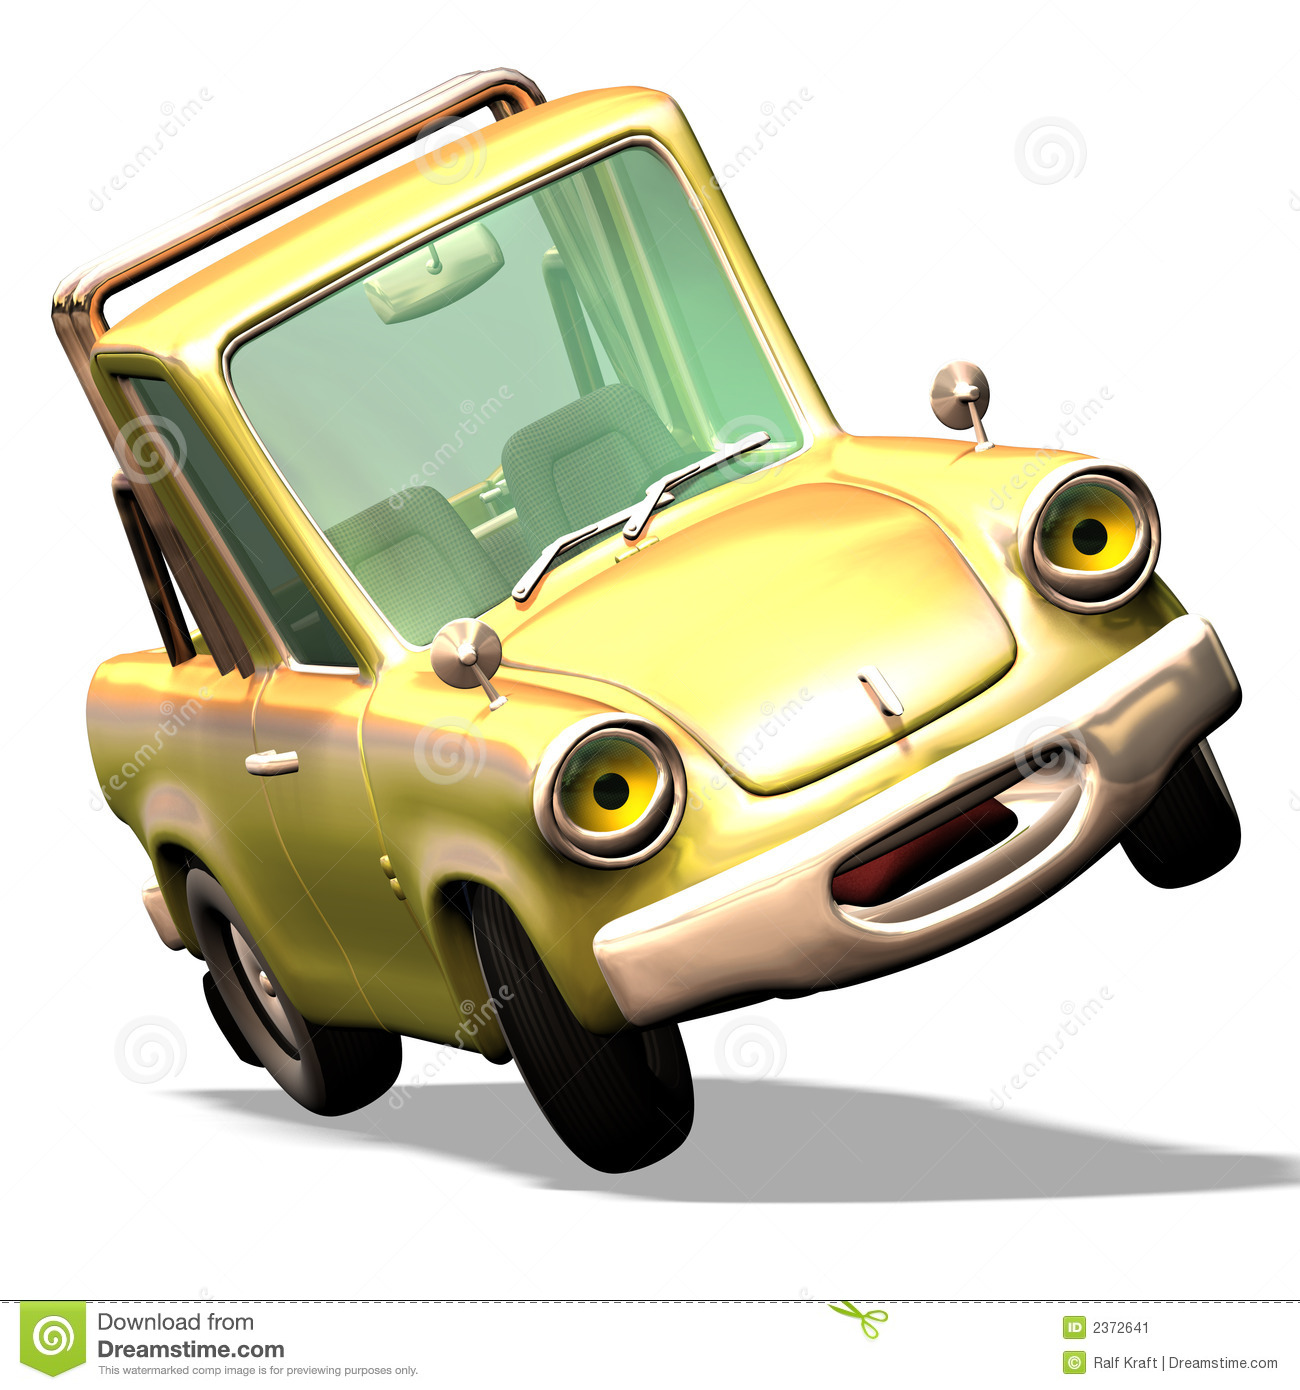 Cartoon Car No. 29 Stock Image.